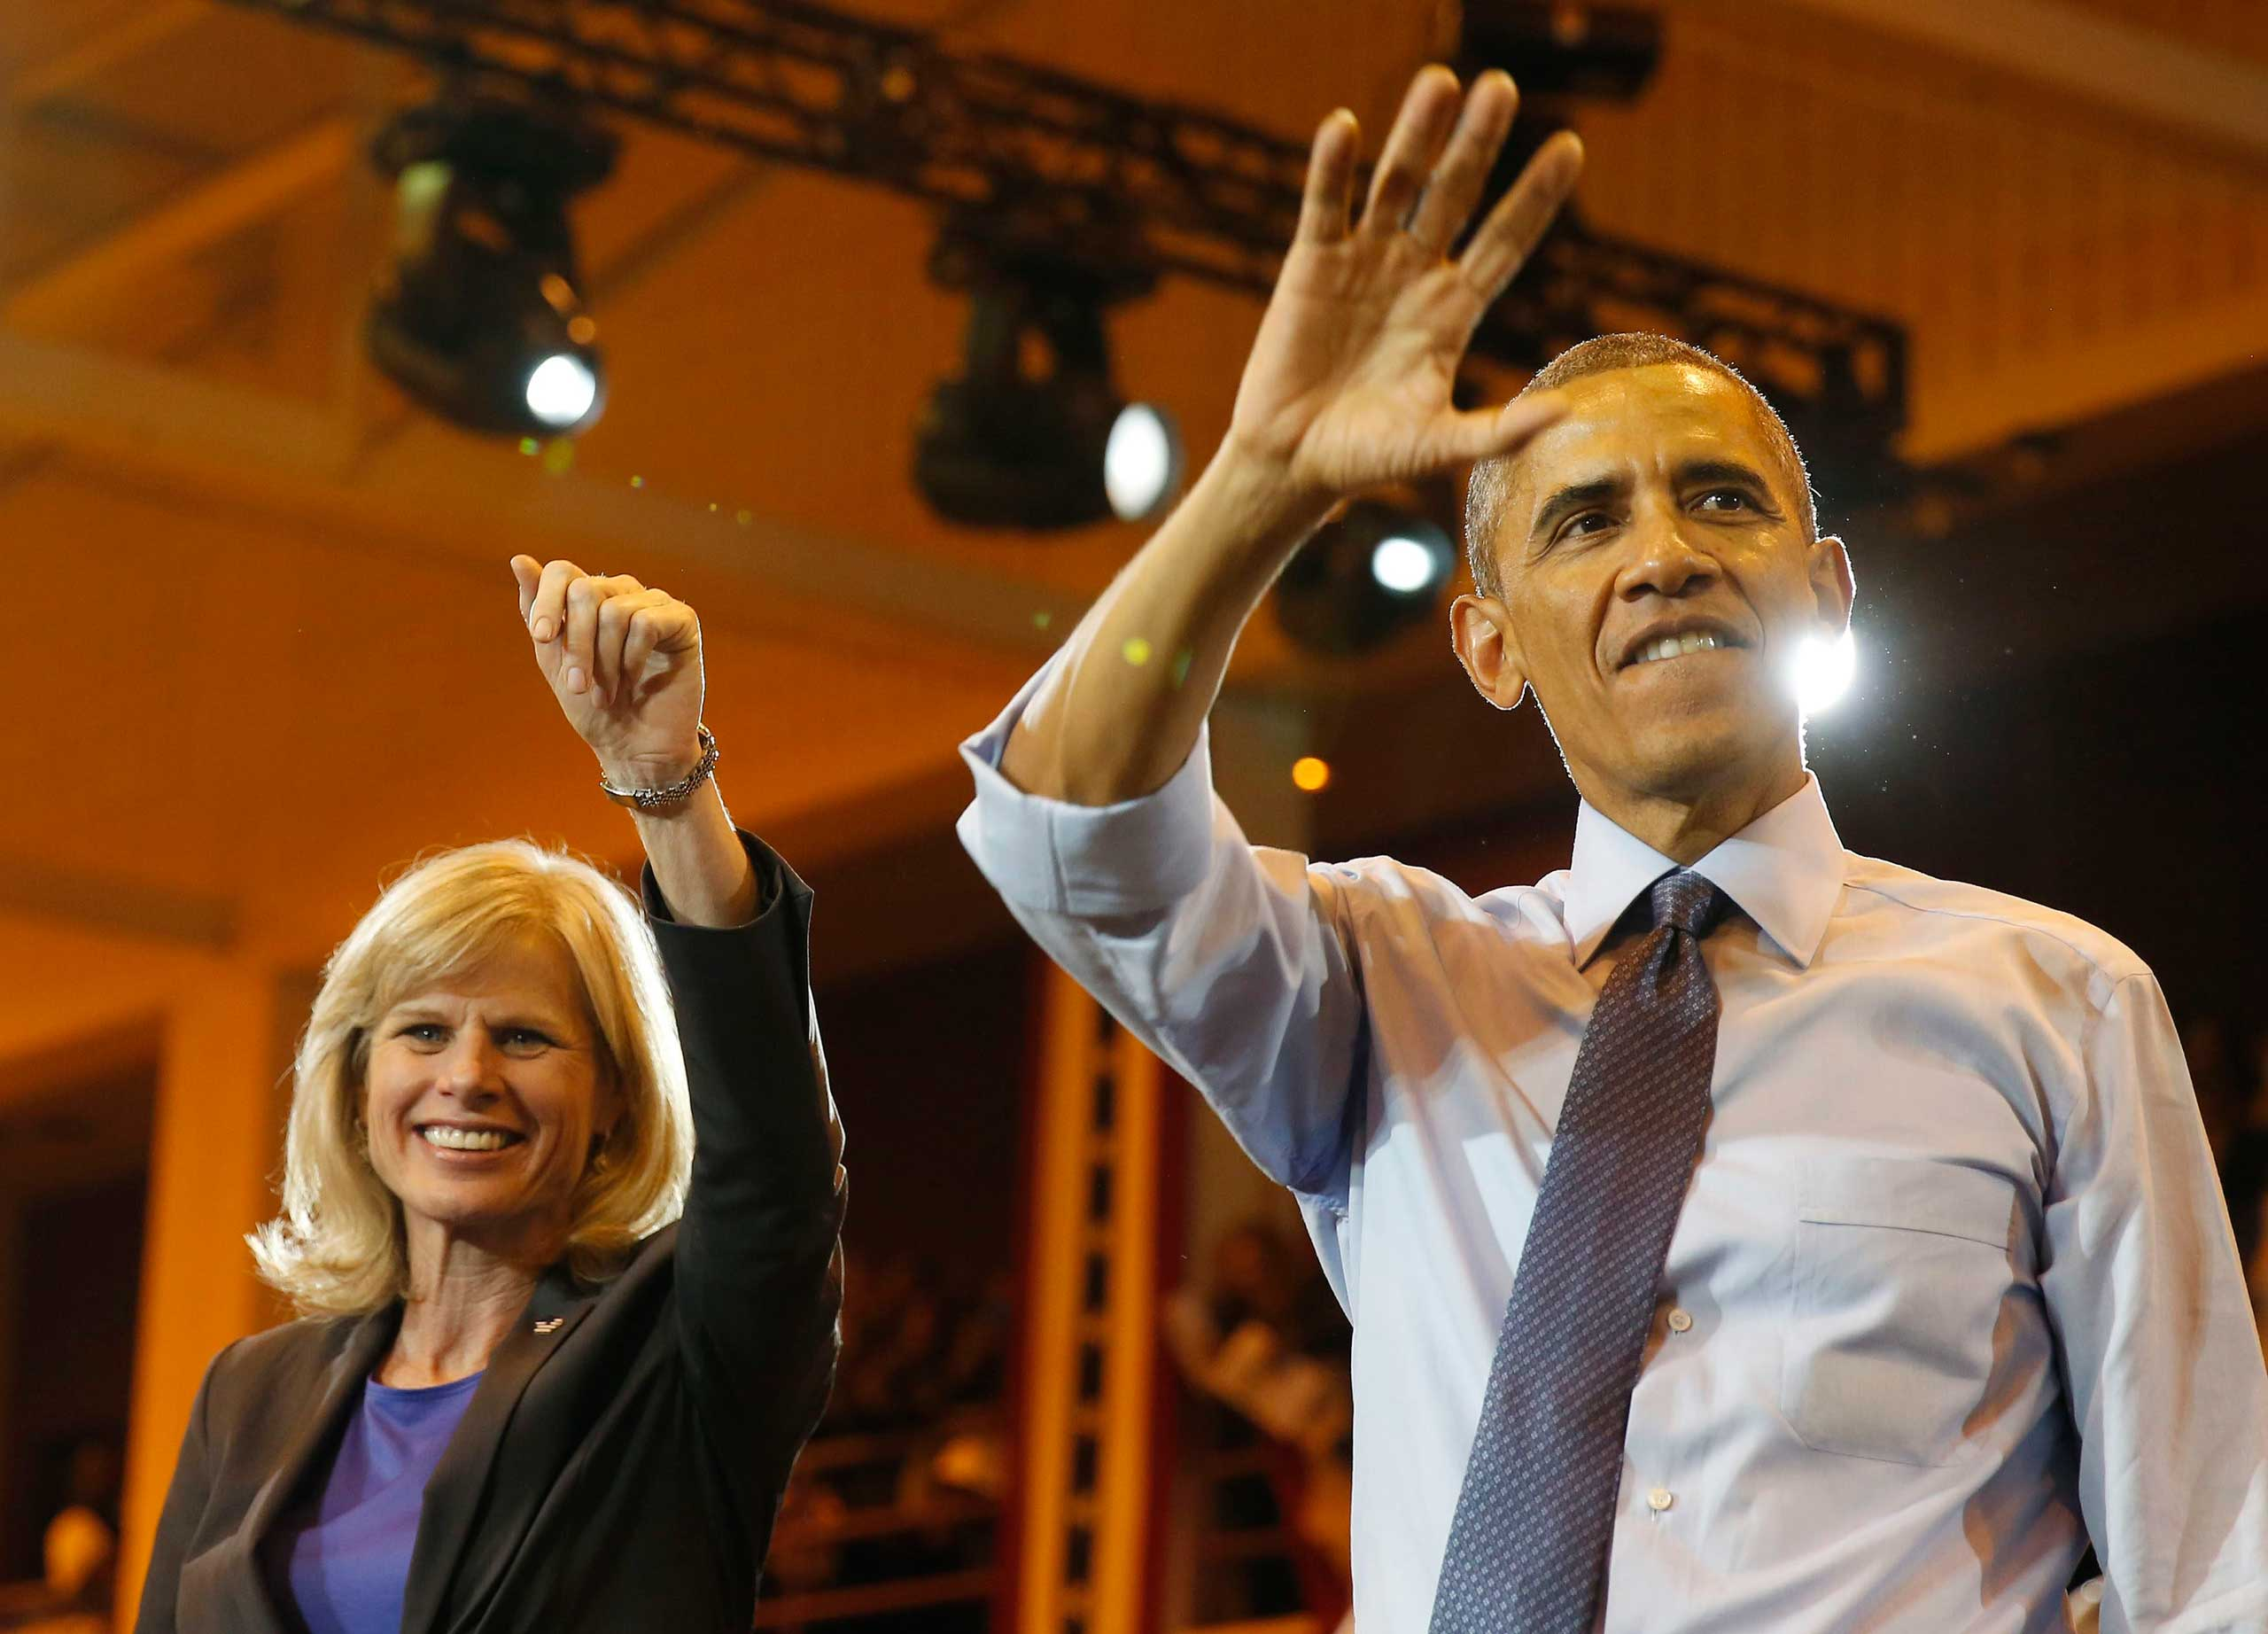 President Obama attends a campaign event with Democratic candidate for Wisconsin Gov. Mary Burke while at North Division High School in Milwaukee, Oct. 28, 2014.